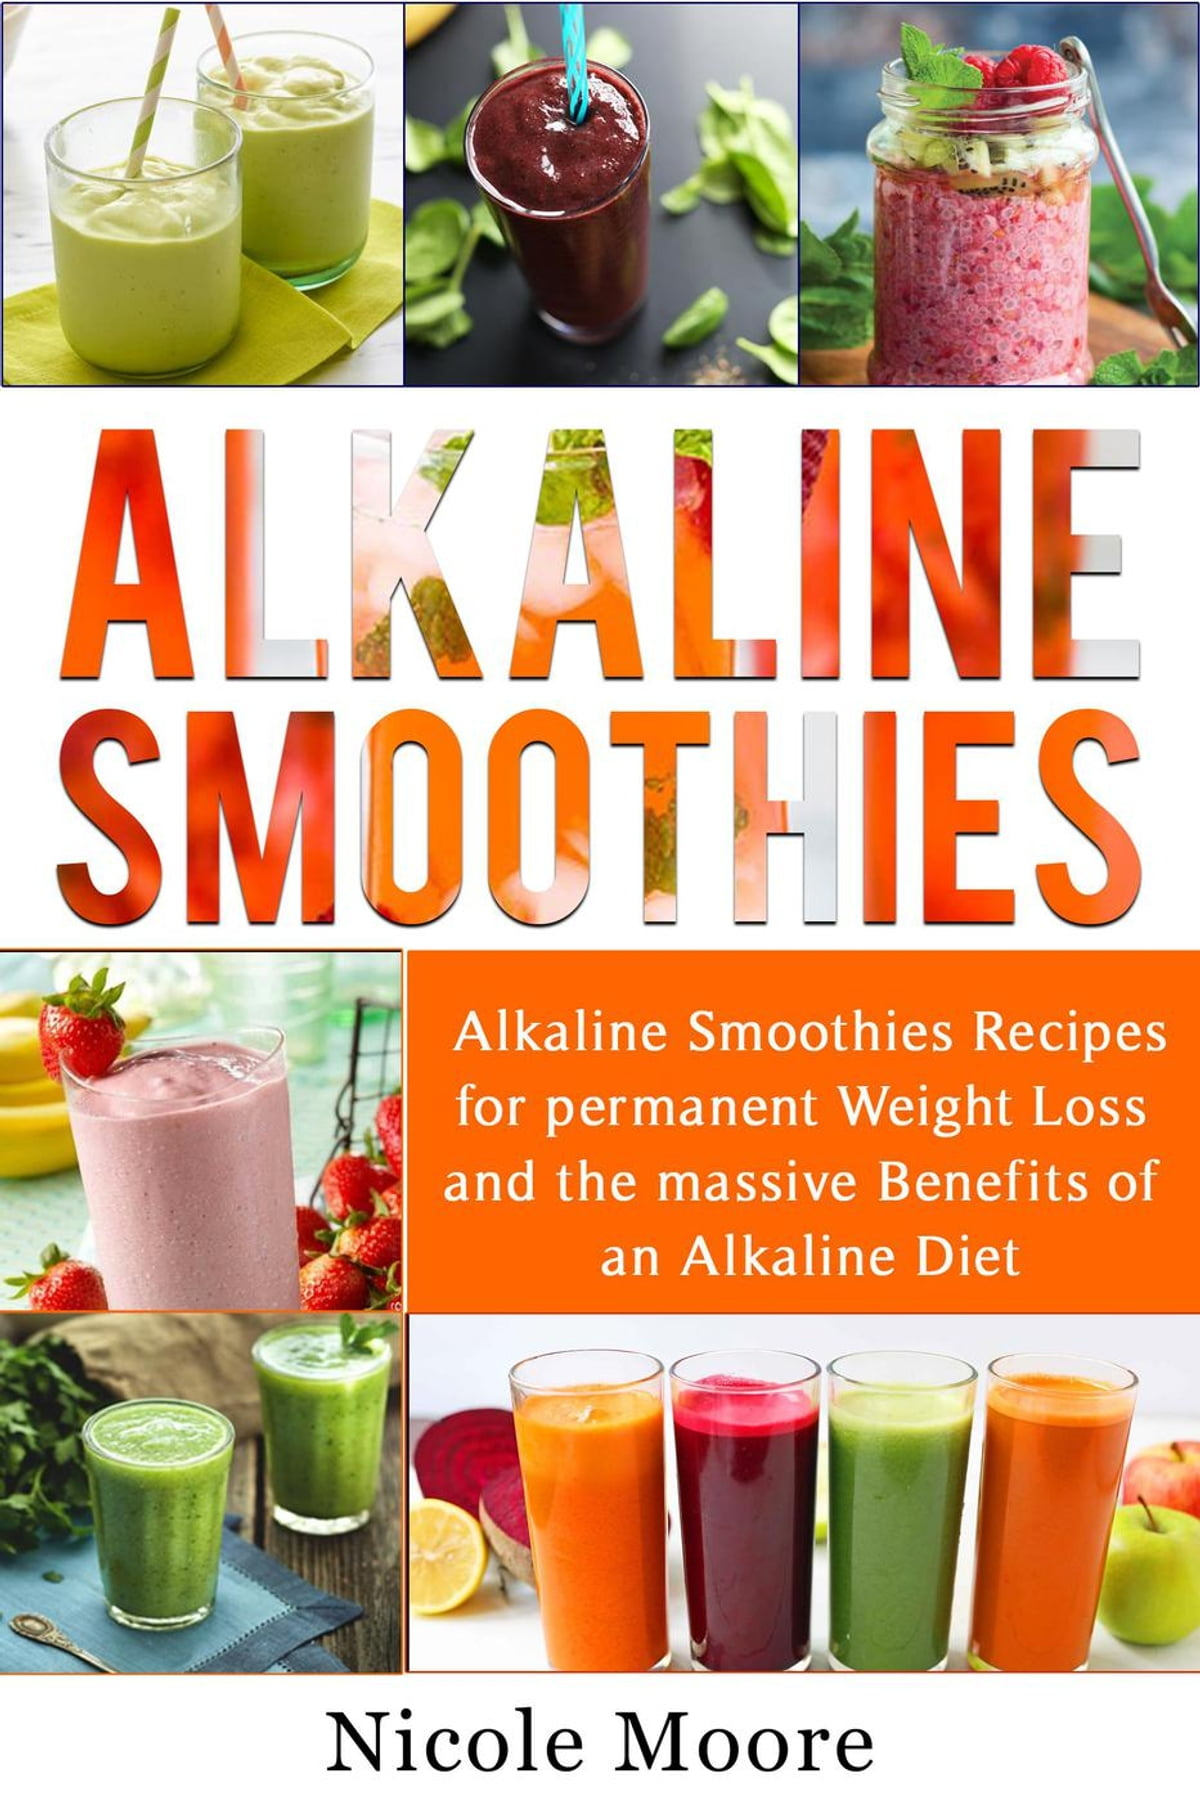 Alkaline Smoothies: Alkaline Smoothies Recipes For Permanent Weight Loss  and the Massive Benefits of an Alkaline Diet ebook by Nicole Moore -  Rakuten